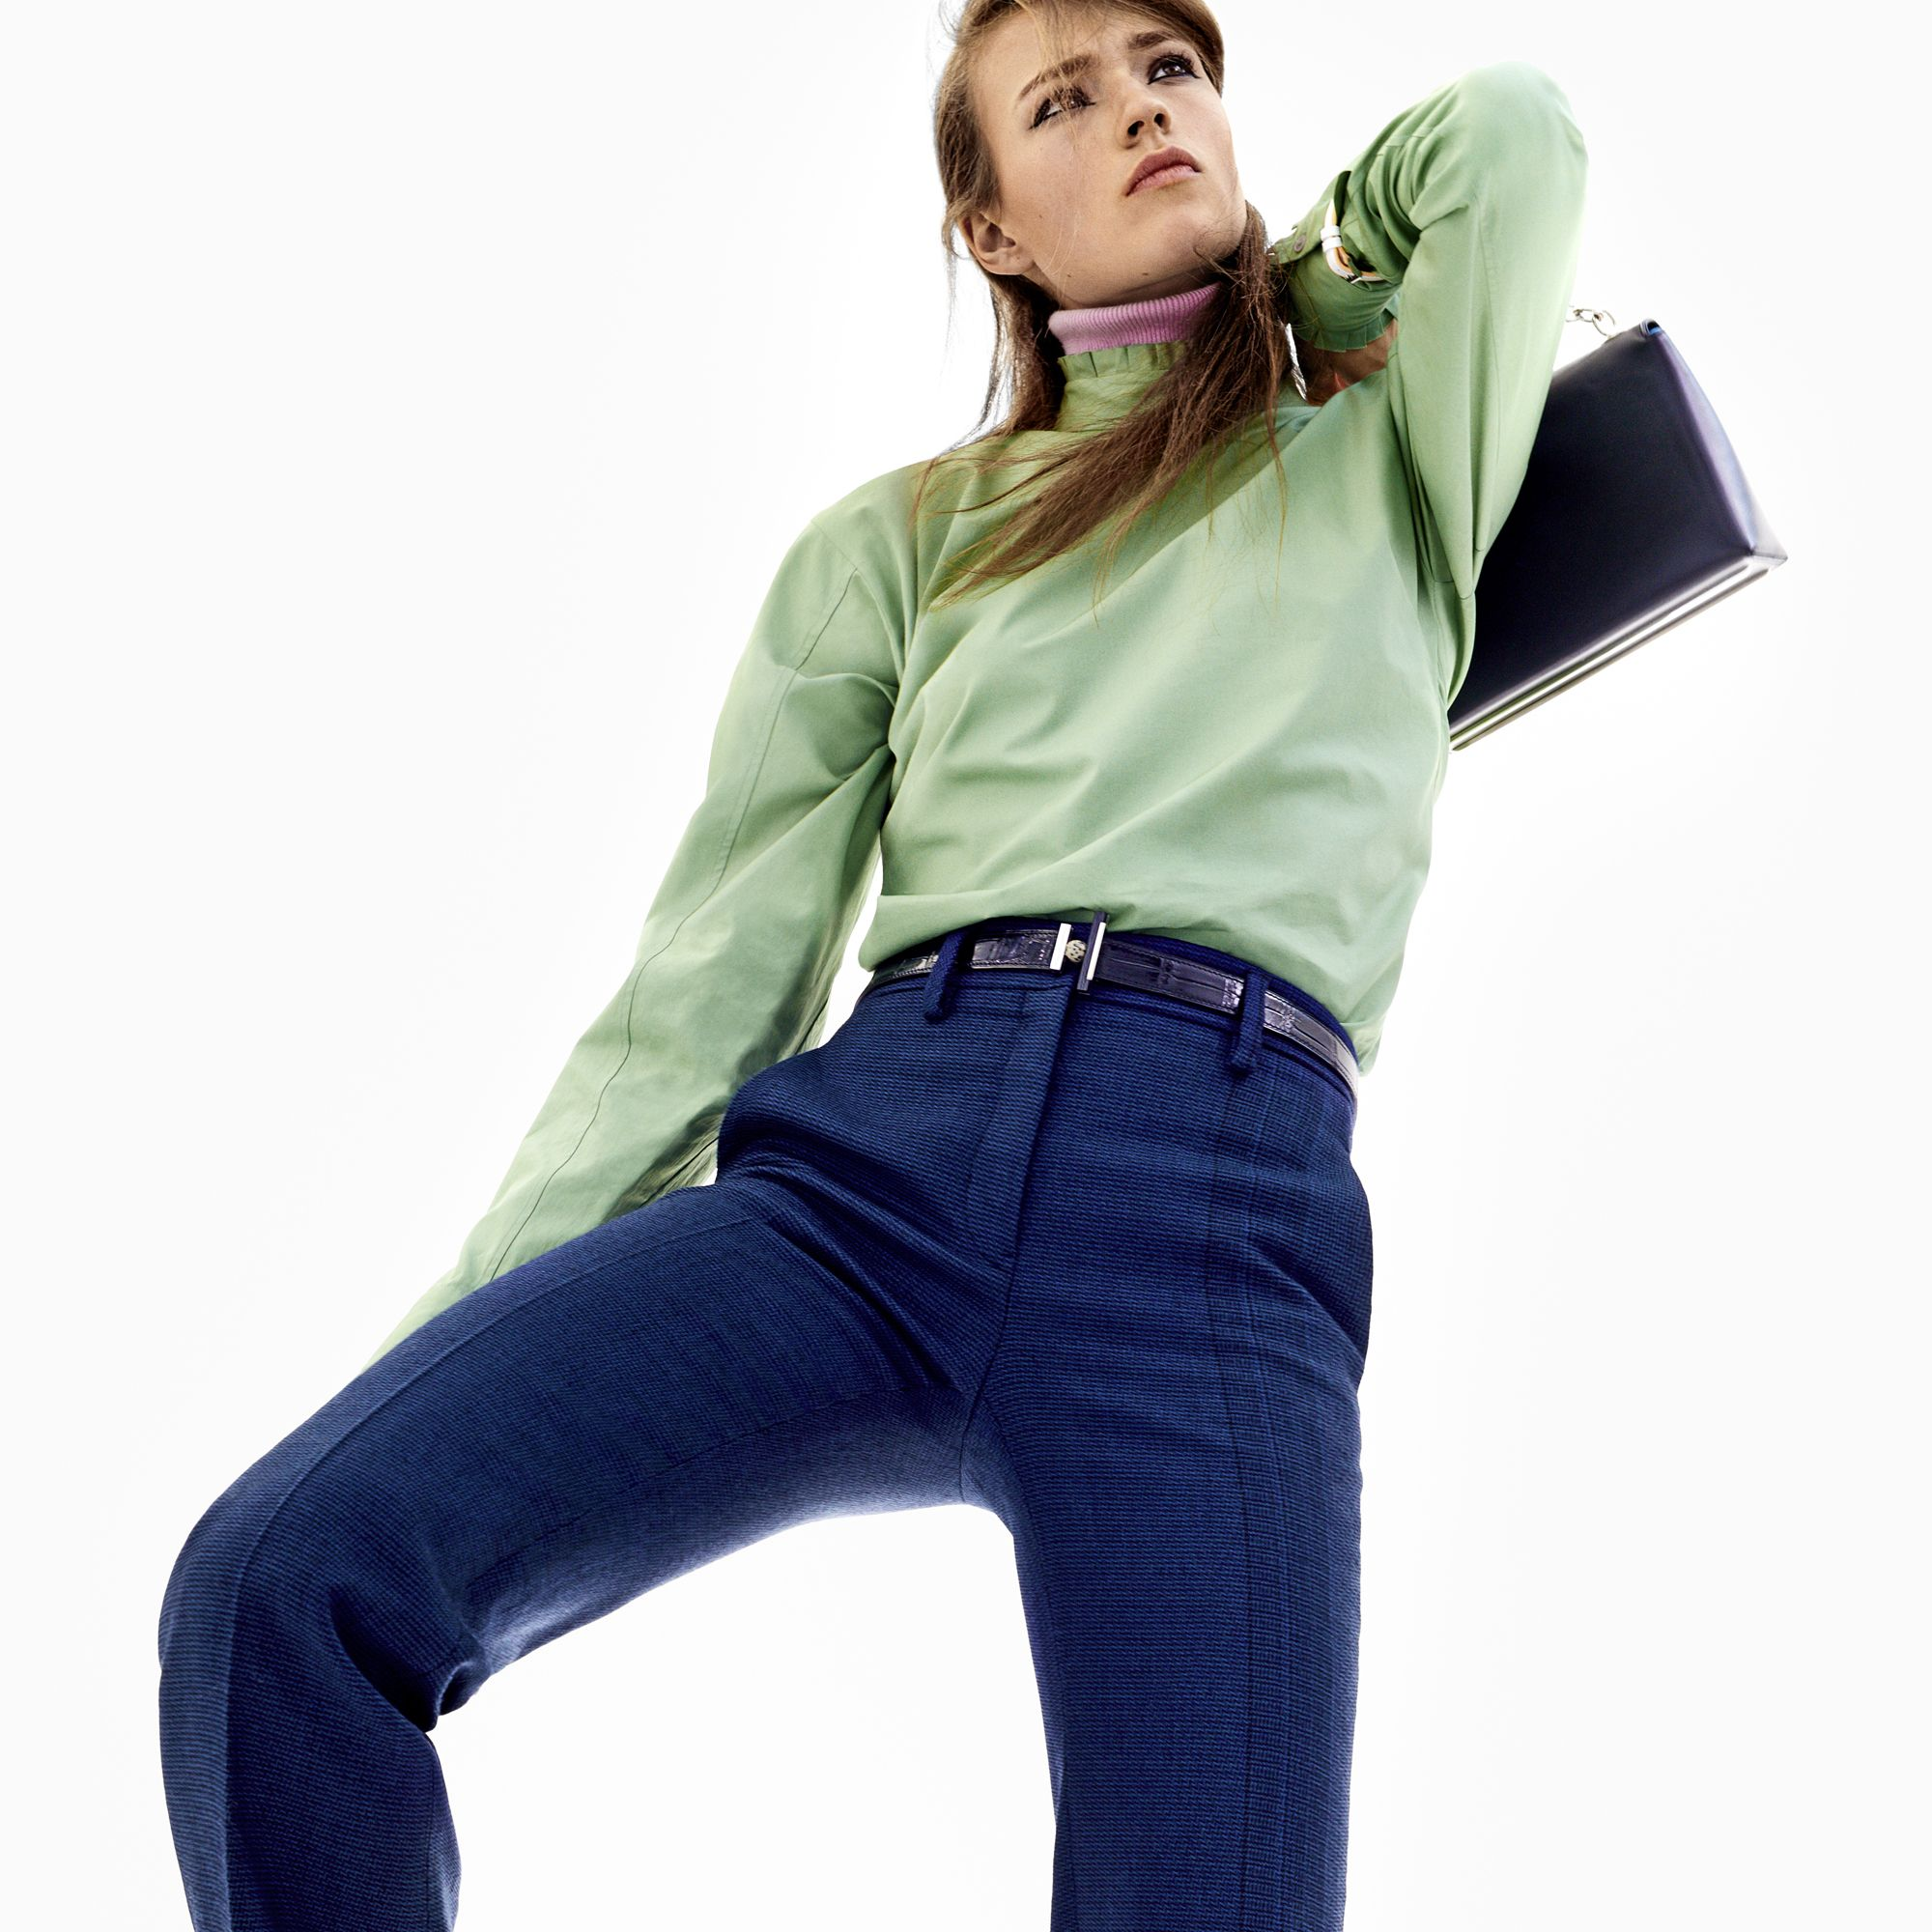 "<strong>Jil Sander </strong> shirt,<a target=""_blank"" href=""http://shop.harpersbazaar.com/designers/jil-sander/button-back-blouse/"">shopBAZAAR.com</a><img src=""http://assets.hdmtools.com/images/HBZ/Shop.svg"" class=""icon shop"">, $465, pants, $1,310, collar, $350, and boots, $995, <strong>jilsander.com</strong>&#x3B; <strong>Dior</strong> timepieces watch, $4,500, 212-931-2950&#x3B; <strong>Balenciaga</strong> bag, $3,270, similar styles available at Balenciaga, NYC, 212-206-0872&#x3B; <strong>Hermès</strong> belt, $3,725, 800-441-4488."